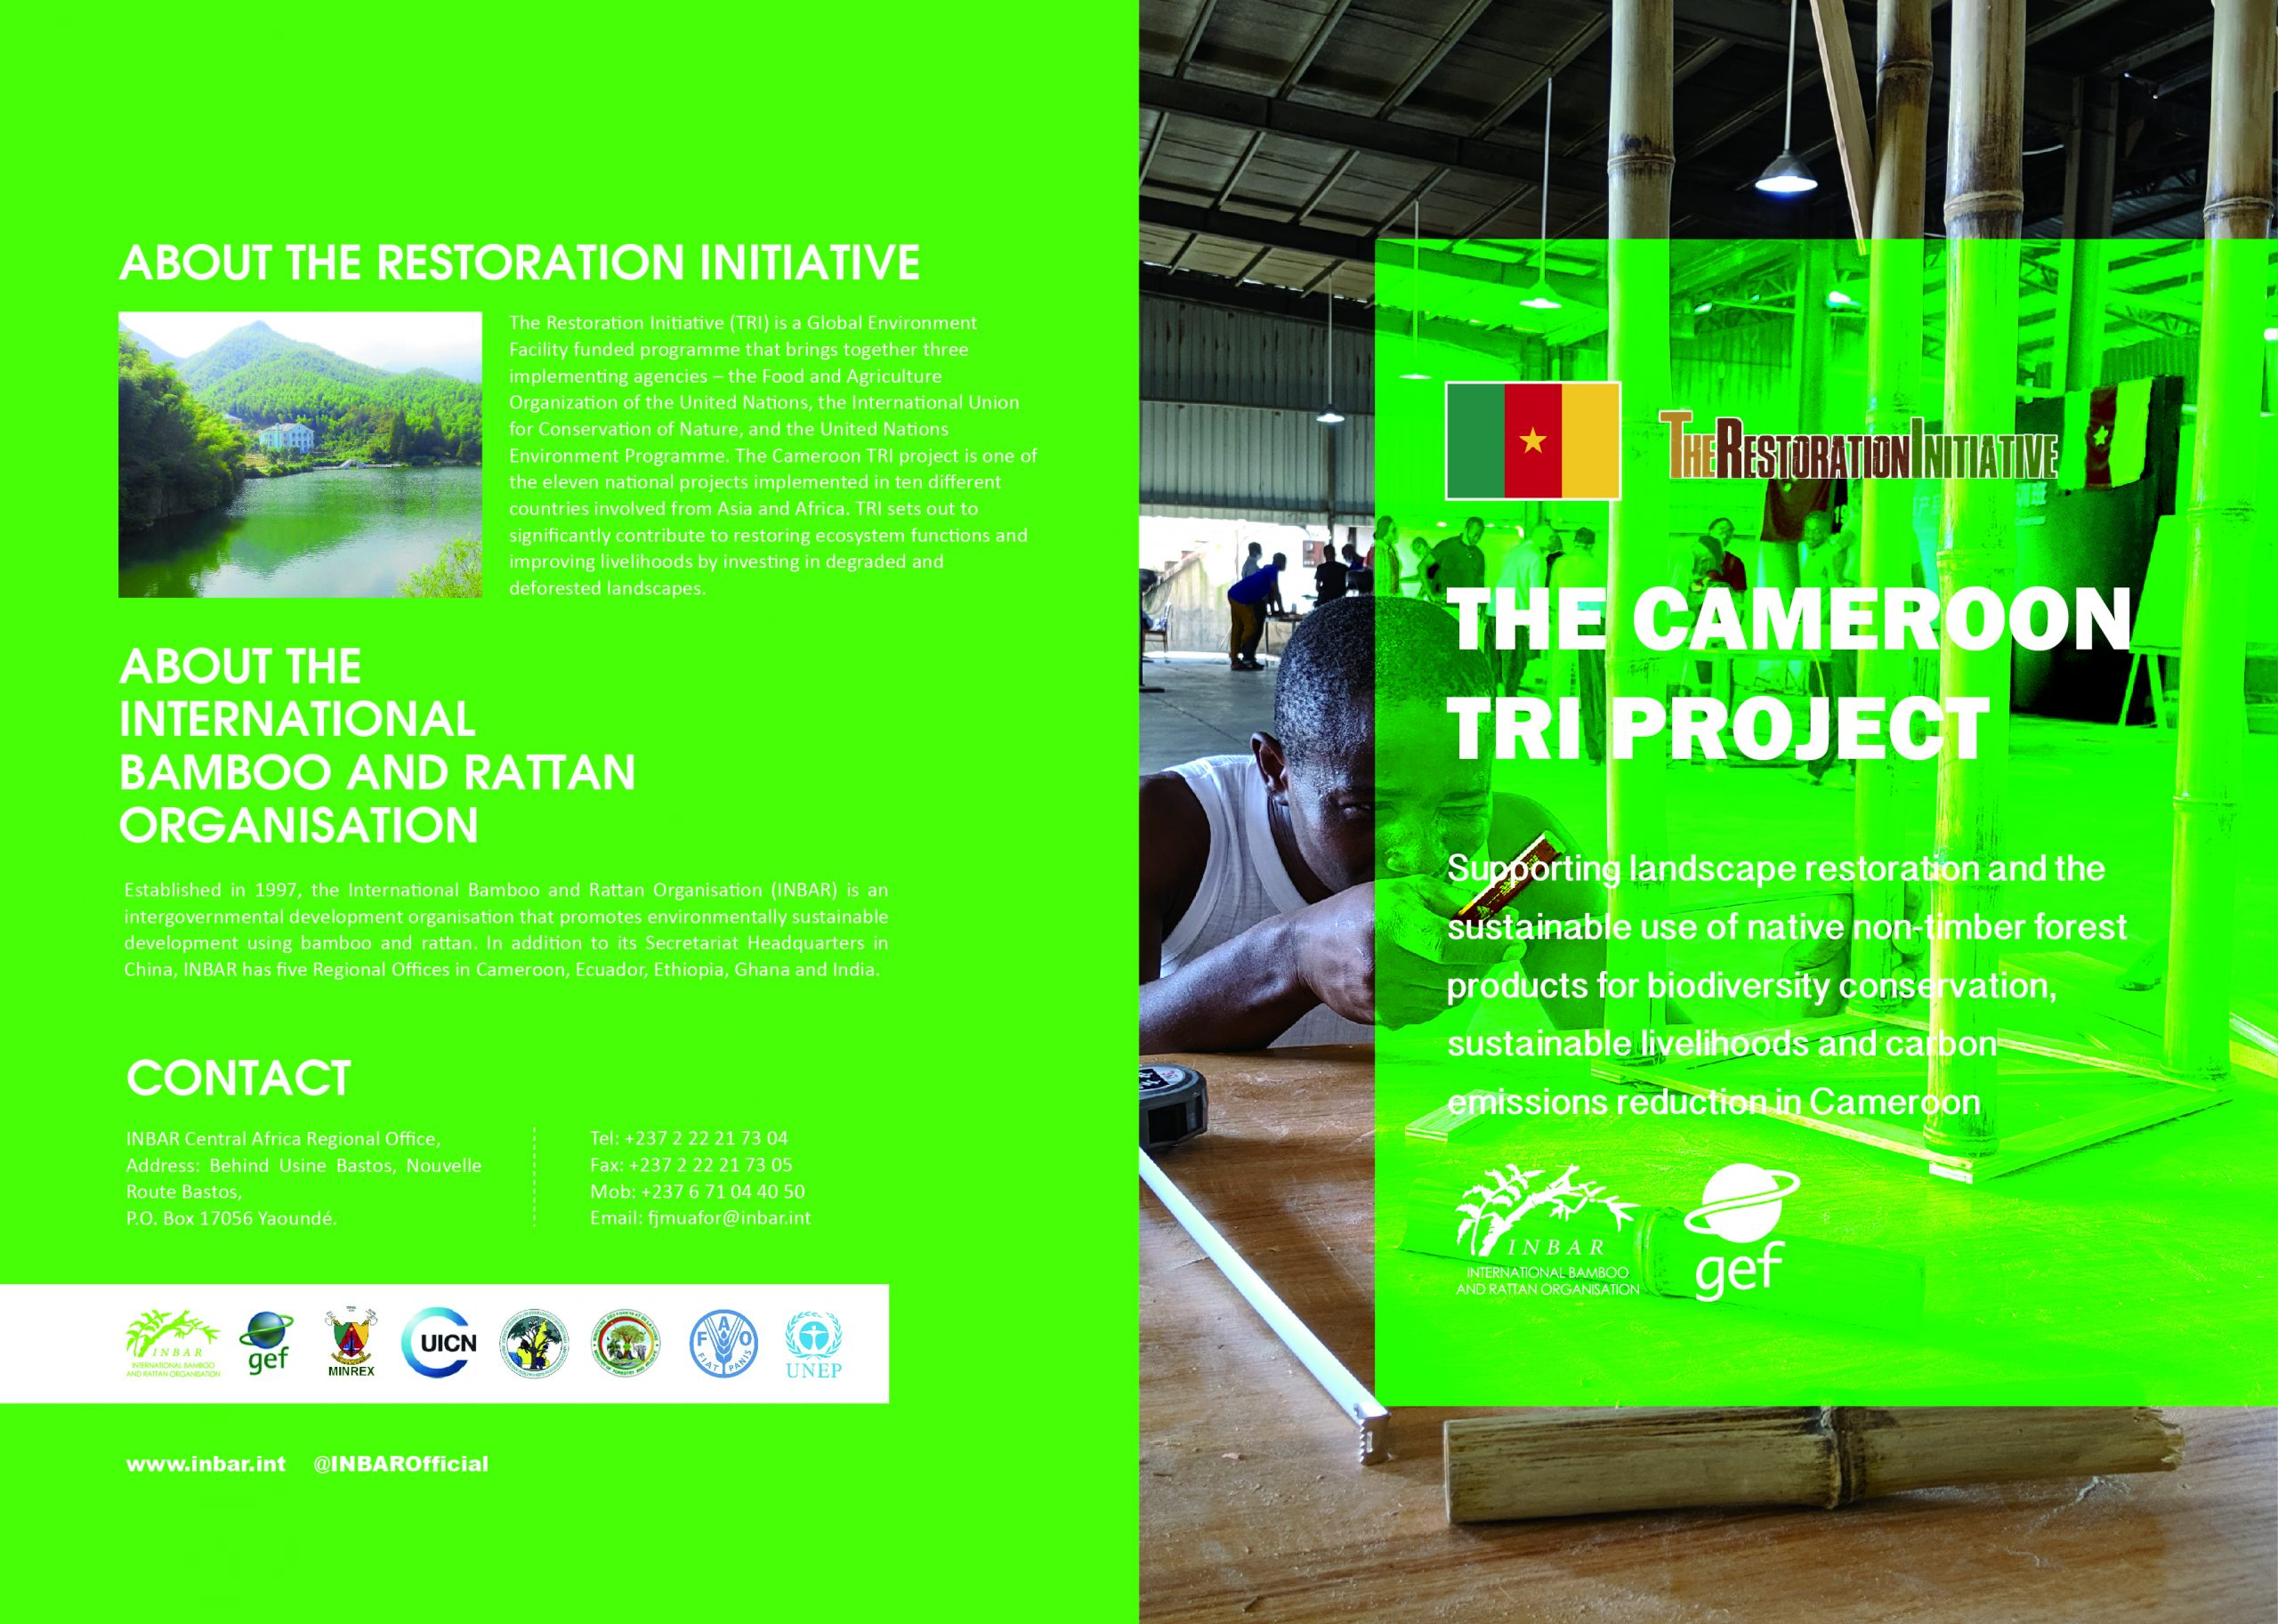 The Cameroon TRI Project